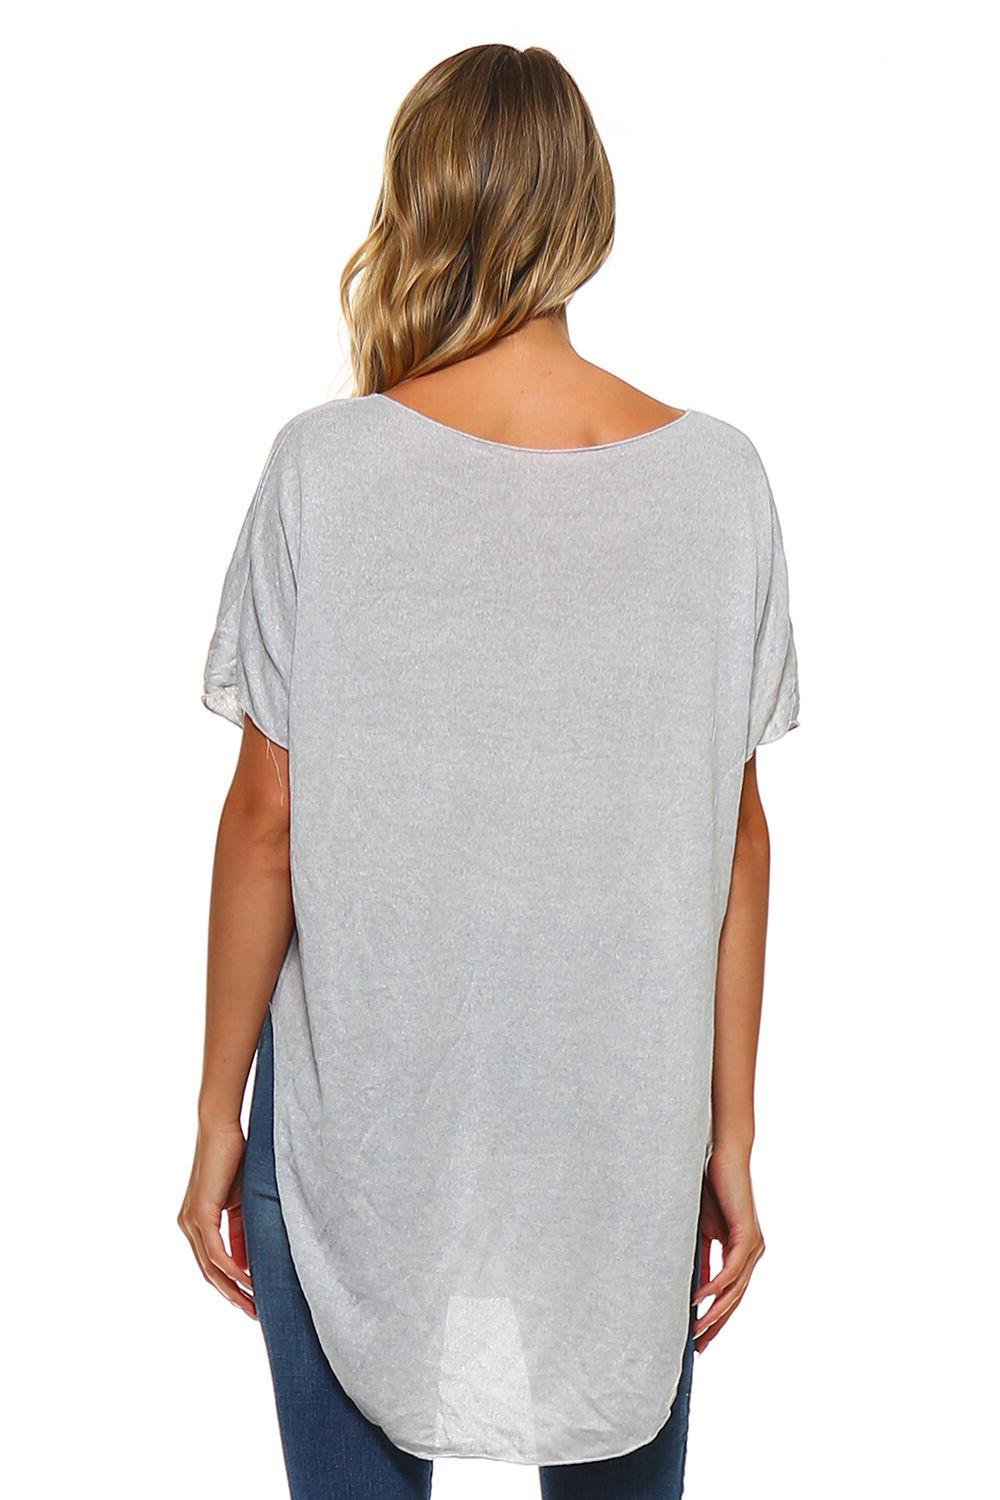 New Women's Silver Long Top USA S M XL